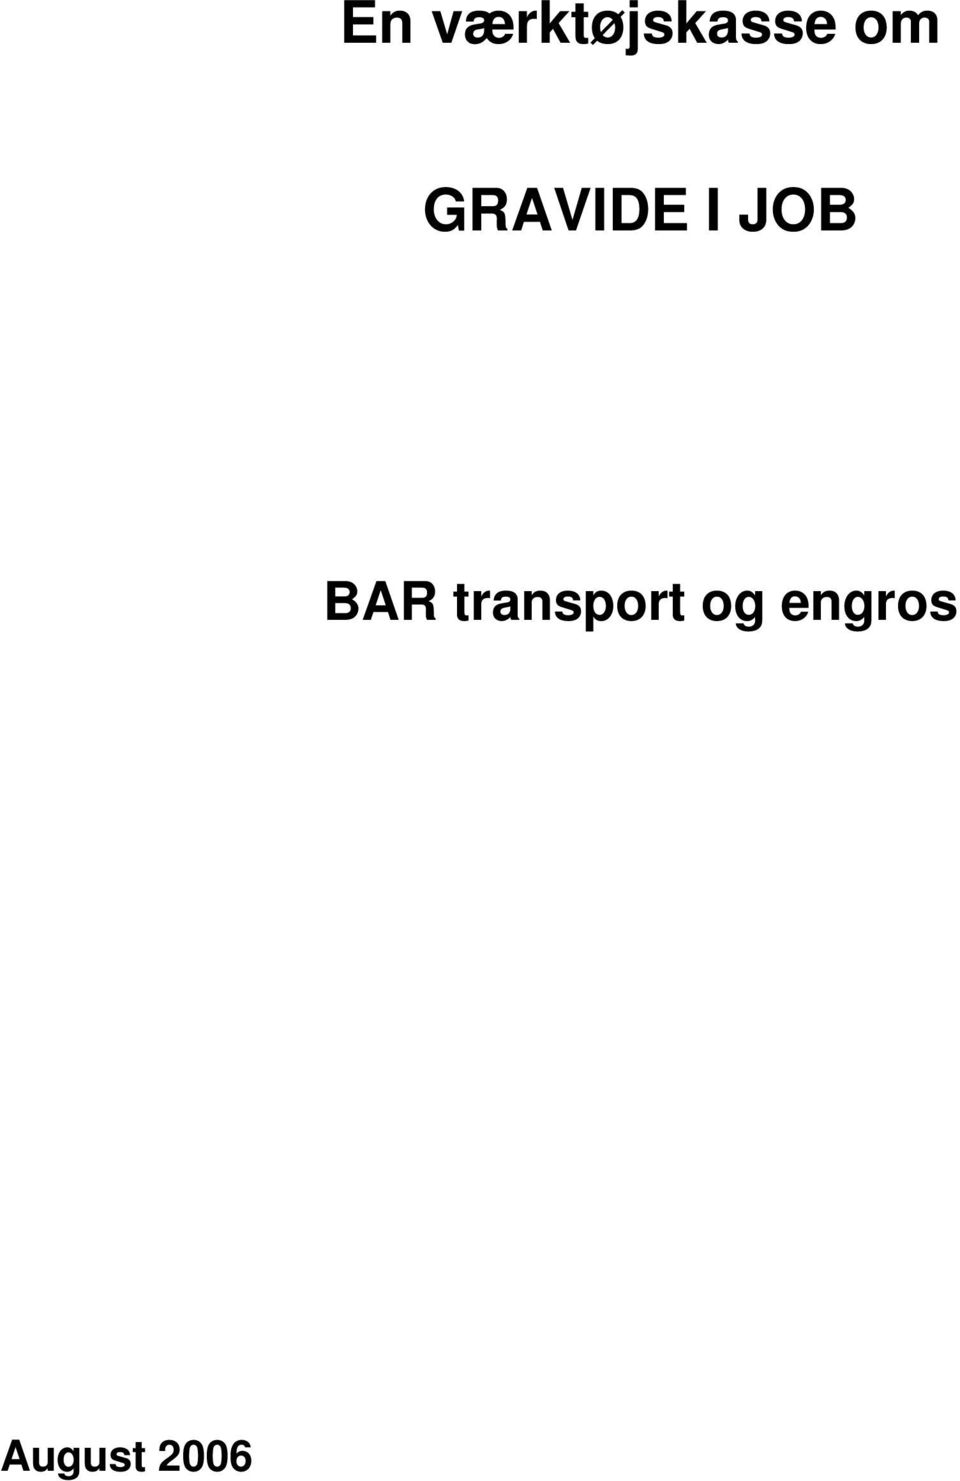 BAR transport og